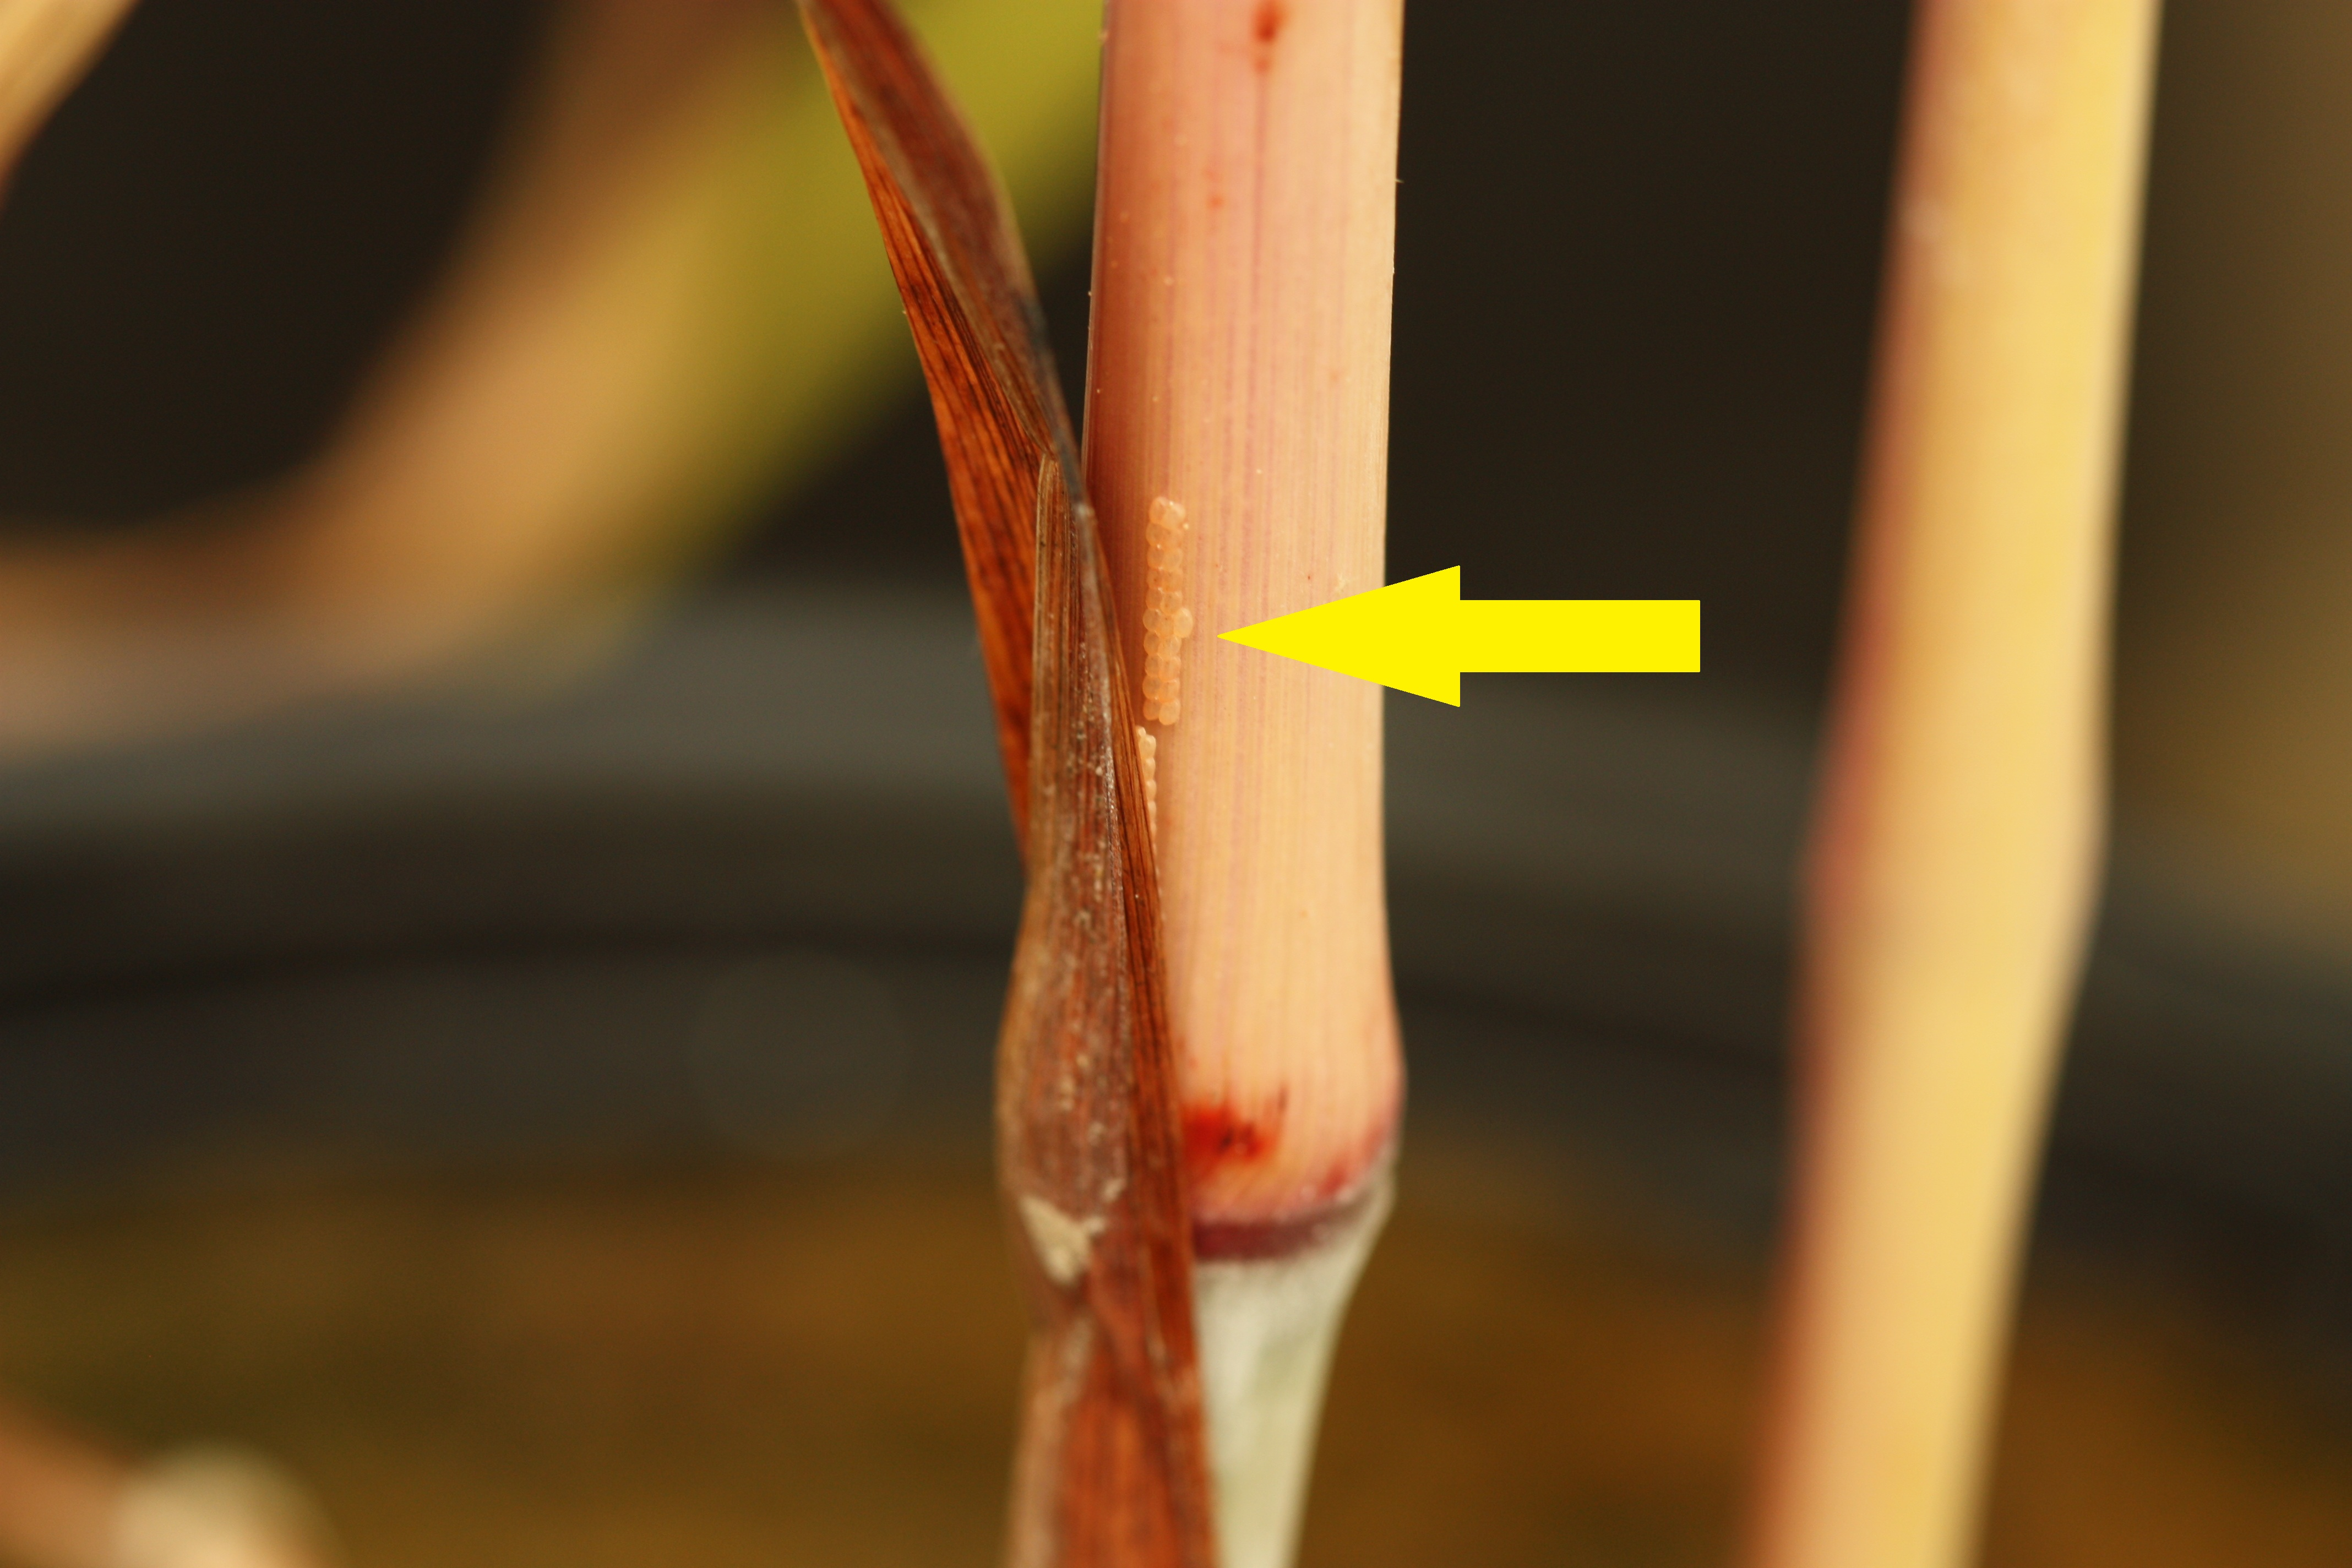 Mexican rice borer egg cluster laid on a johnsongrass stem under the leaf sheath.